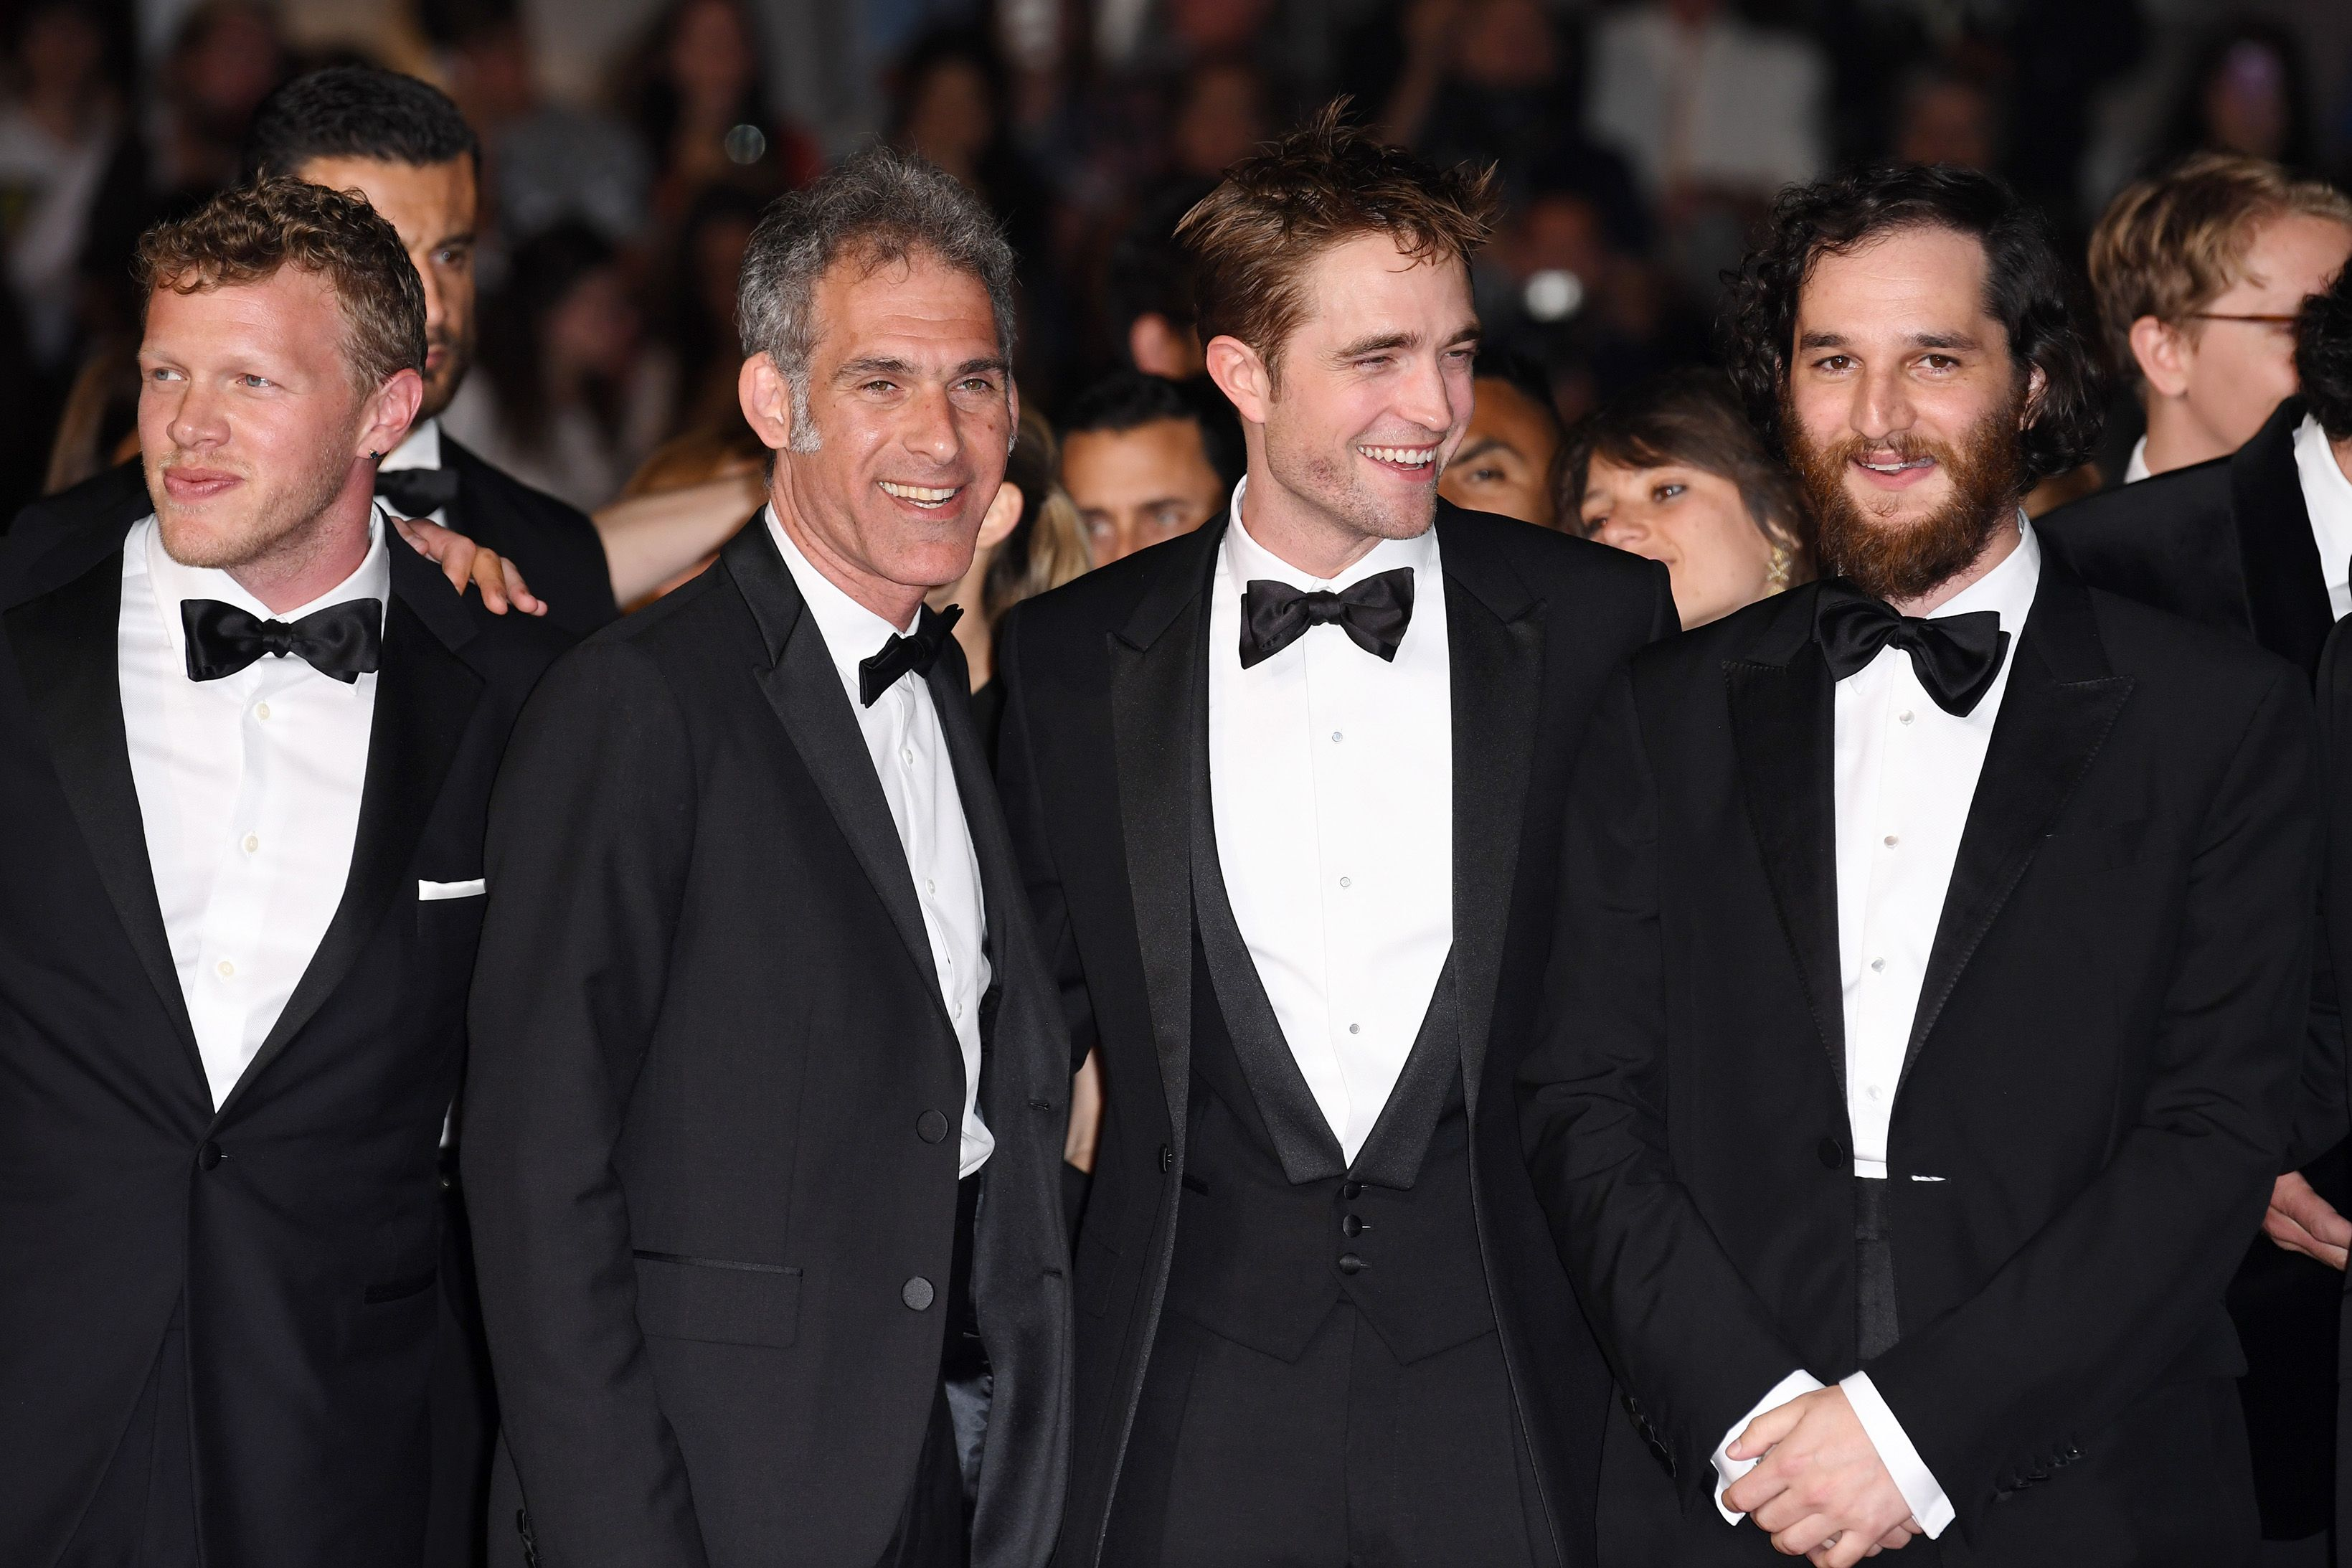 Sebastian Bear Ronnie Bronstein Robert Pattinson And Joshua Safat The Good Time Premiere At The Cannes Film Festival In